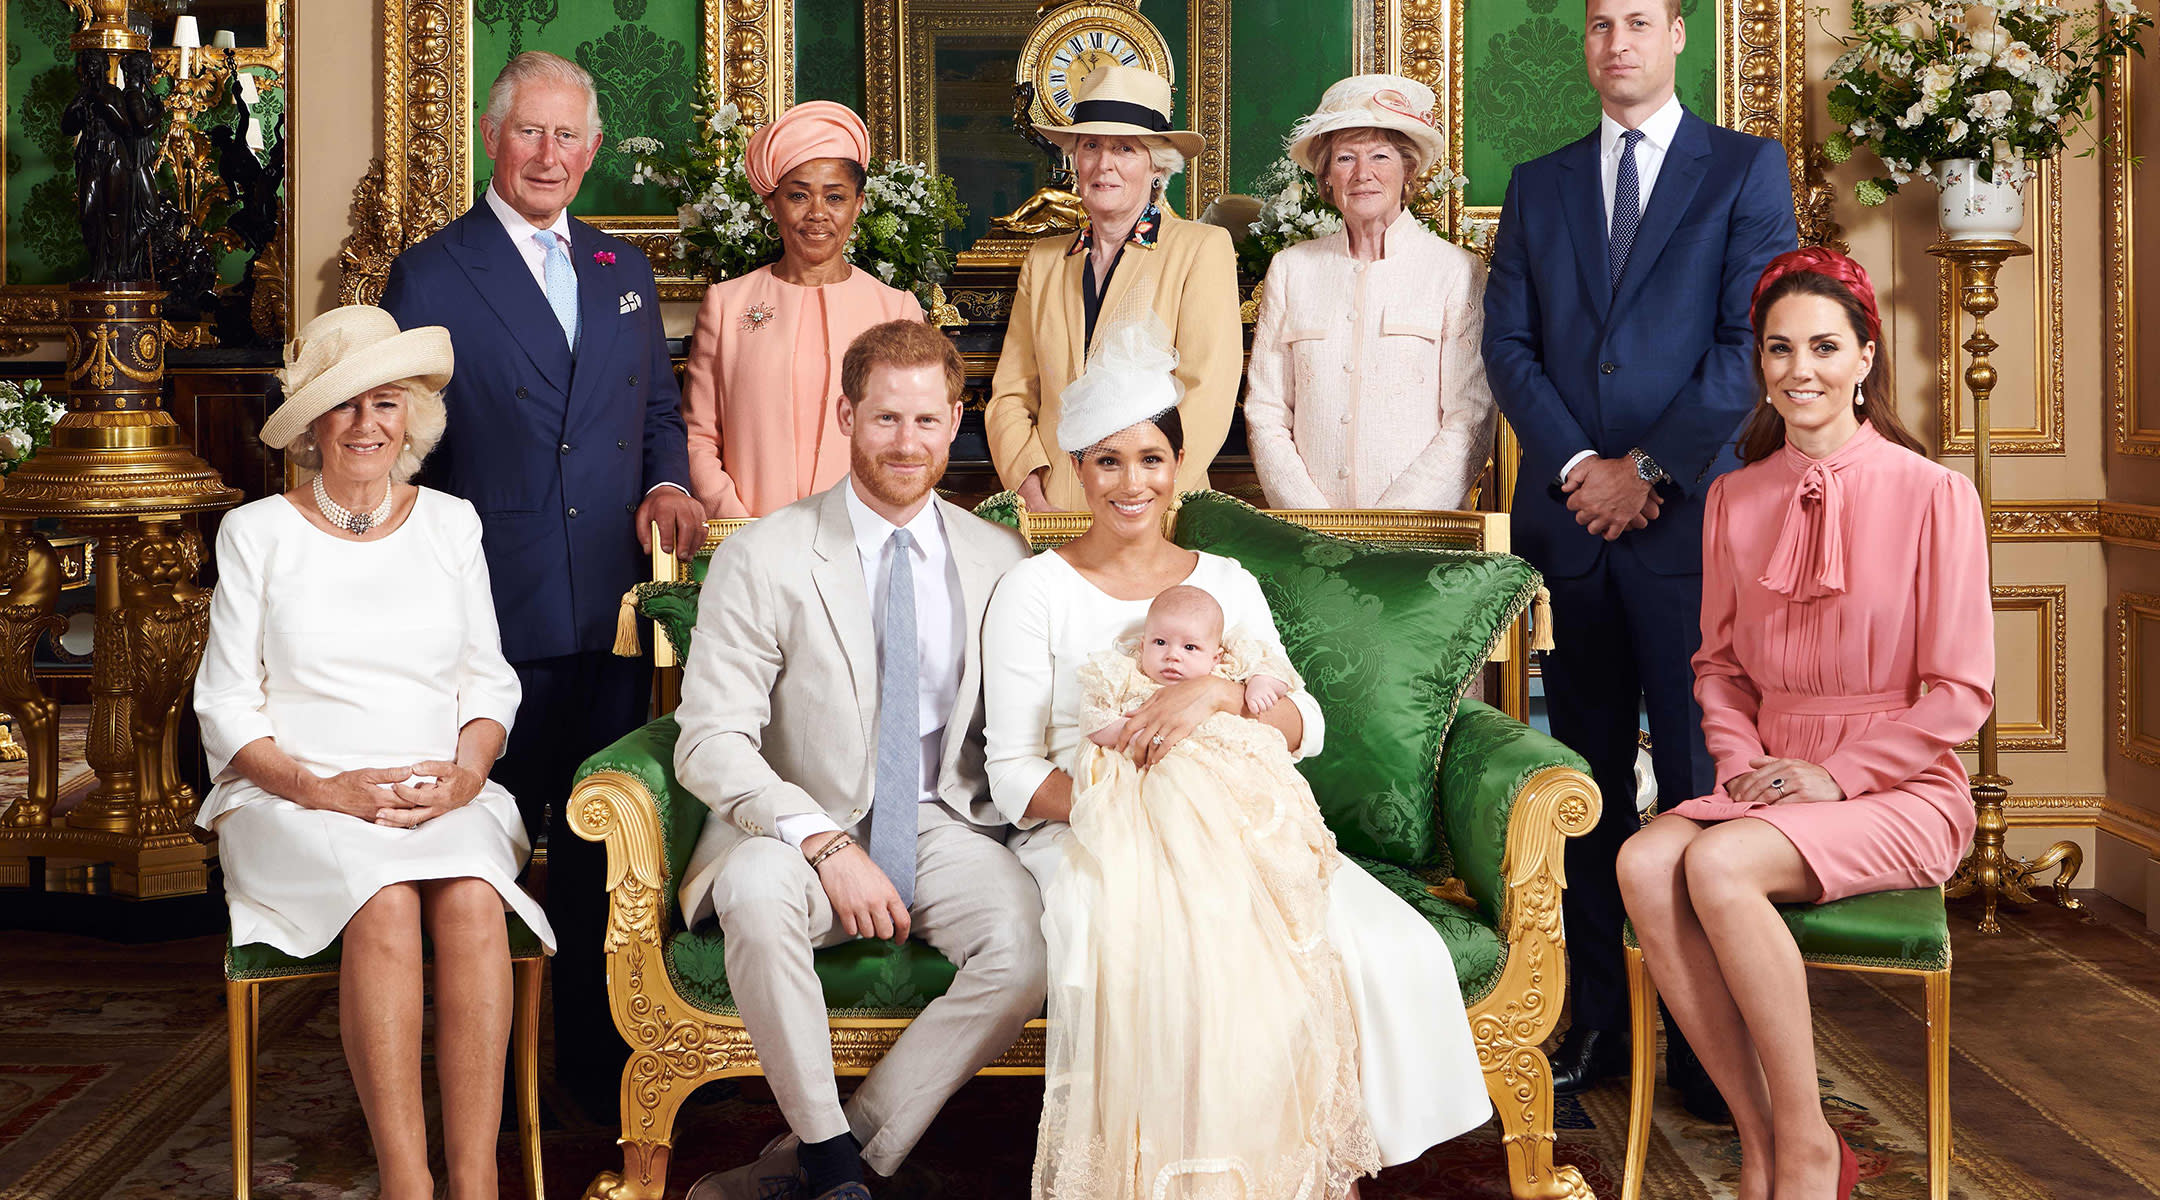 royal family poses for baby Archie's christening